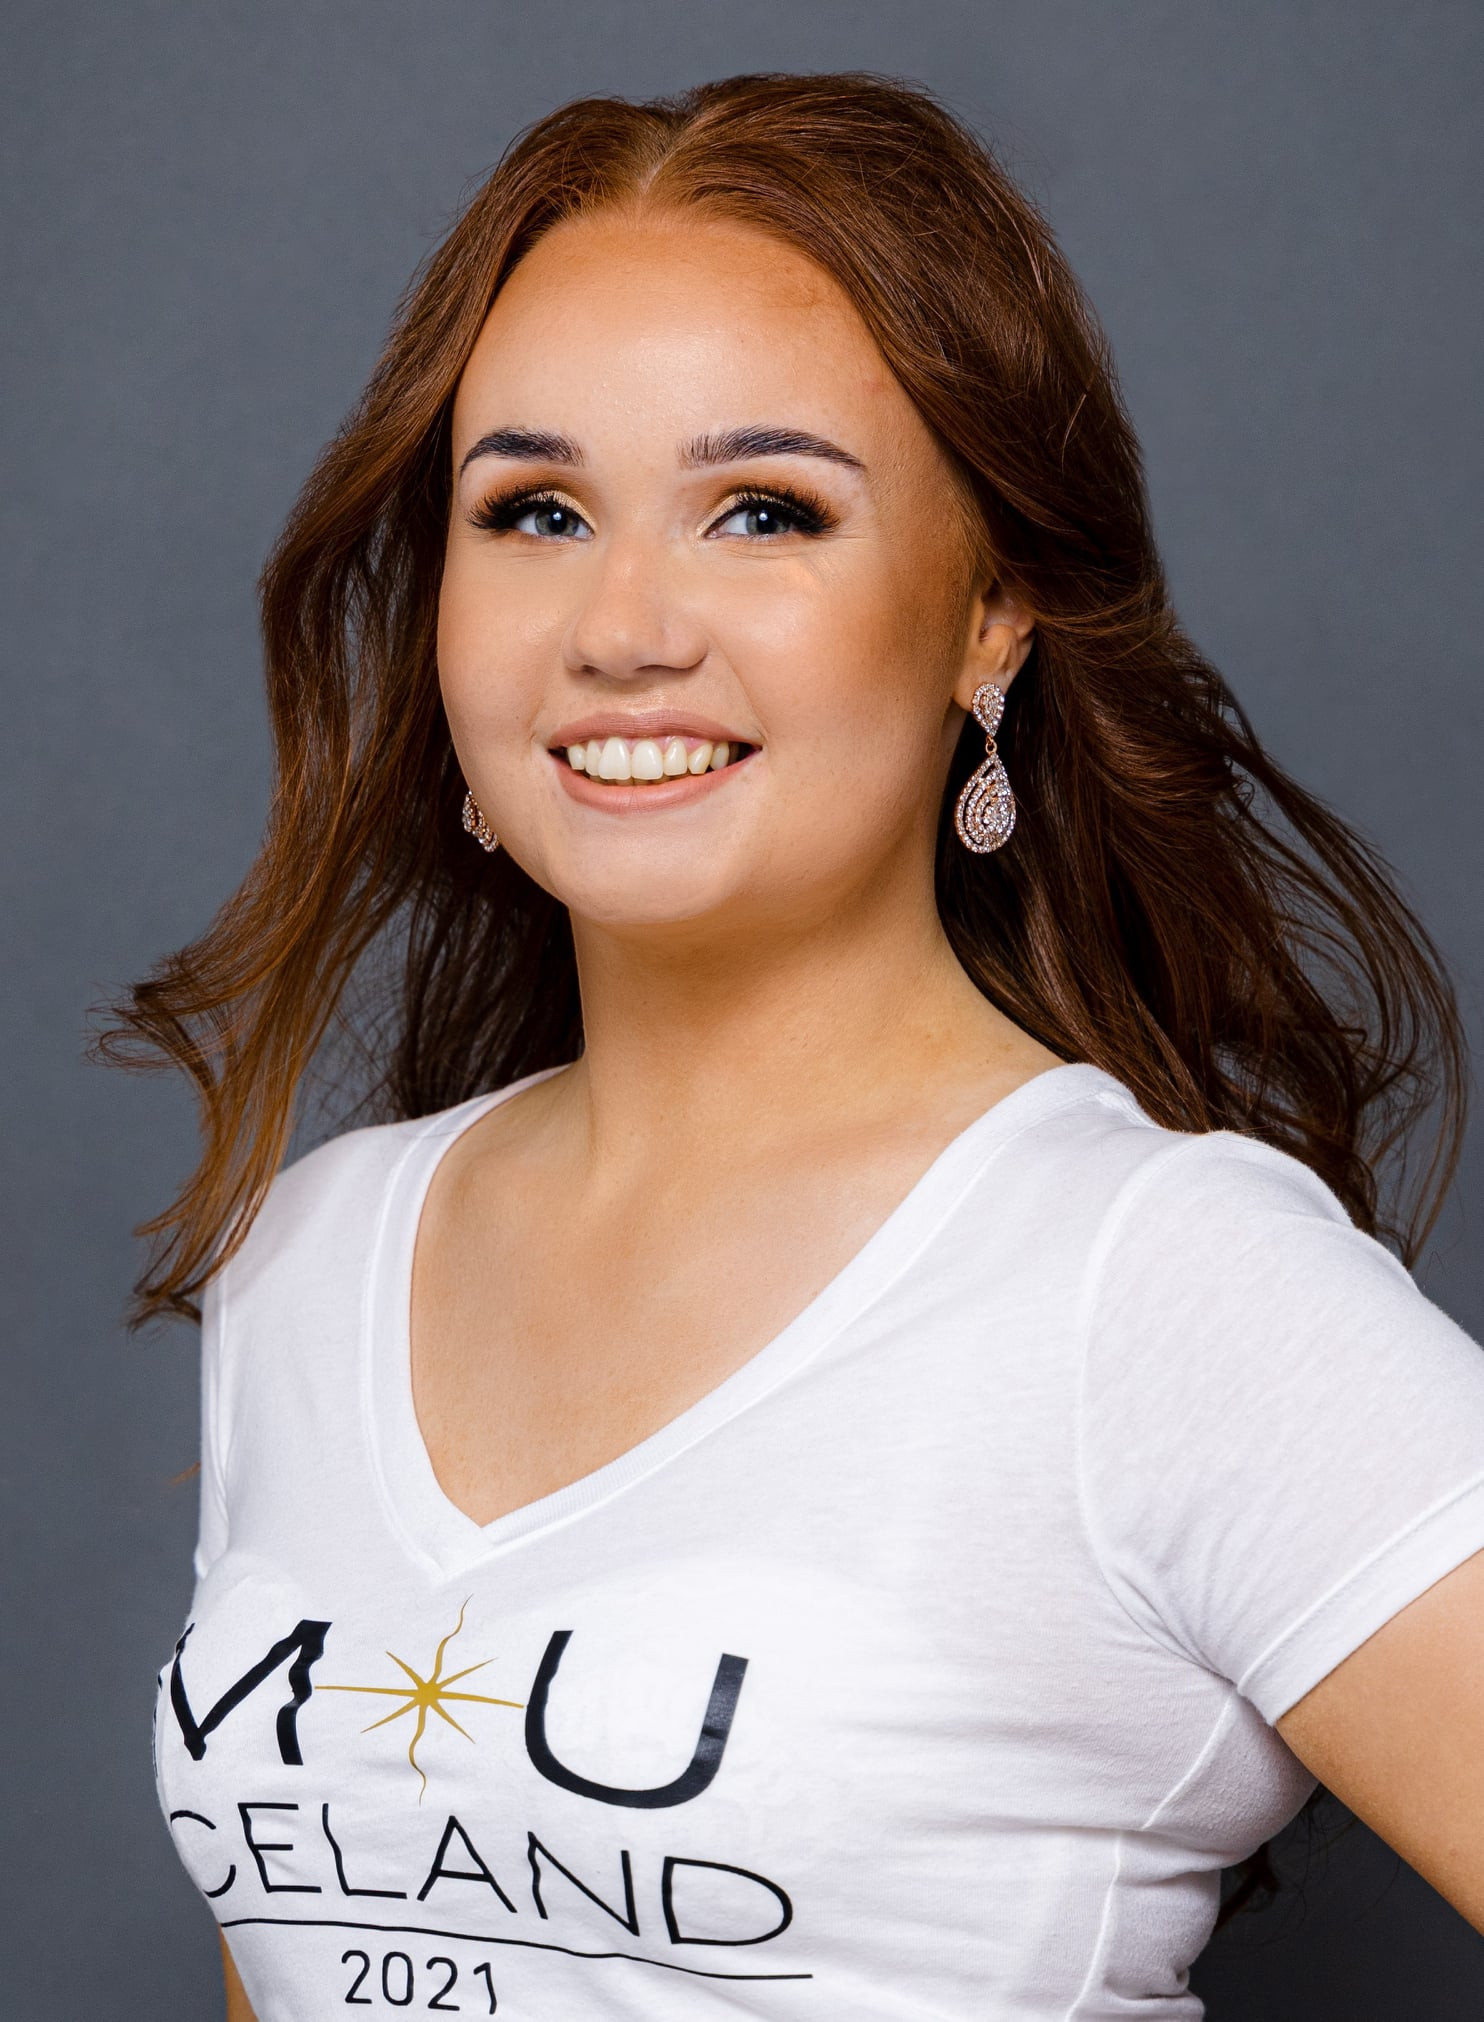 candidatas a miss universe iceland 2021. final: 29 sep. RL5hPa